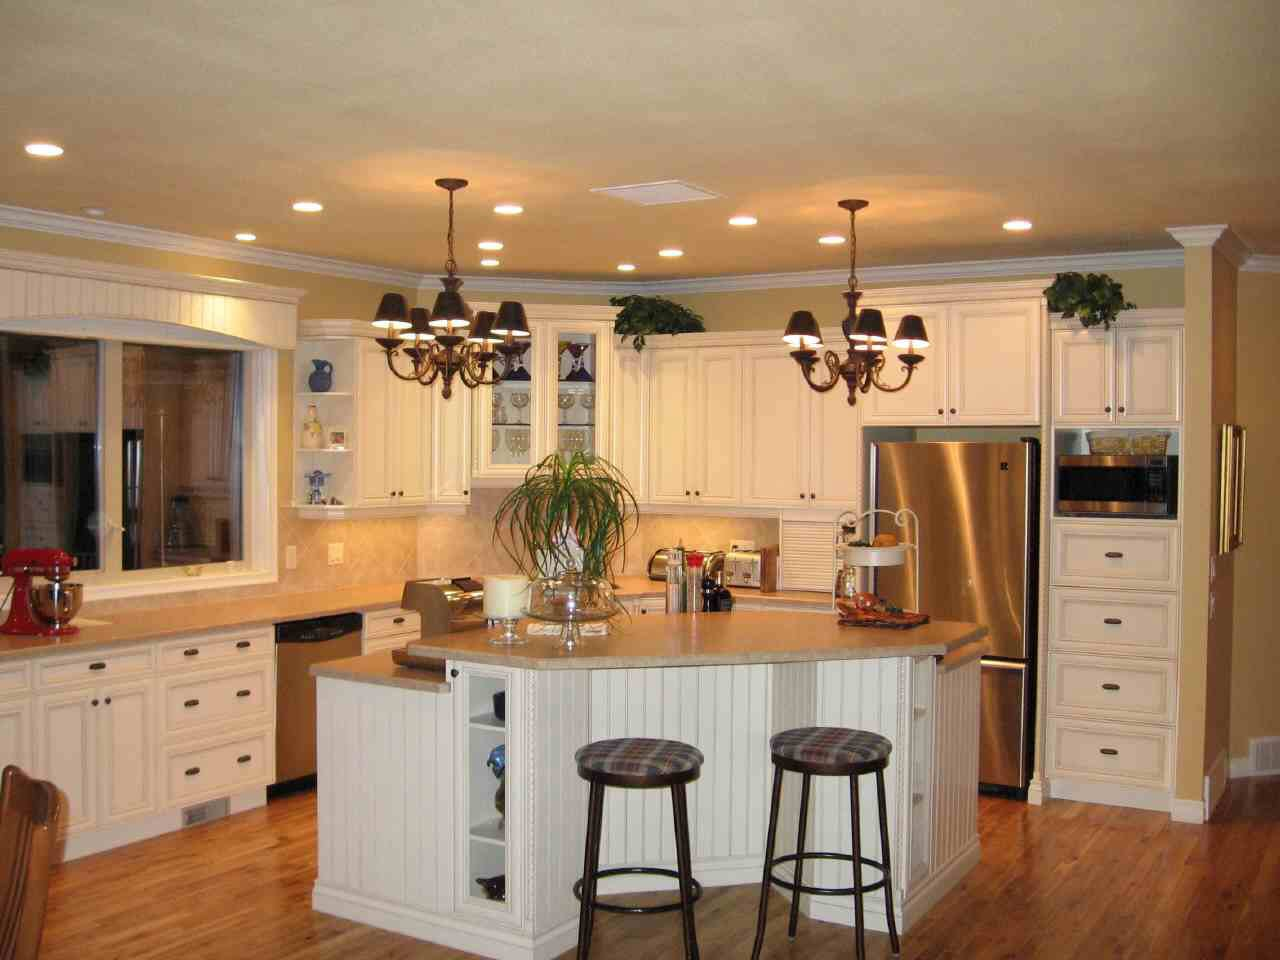 Brilliant Small Country Kitchen Design Ideas 1280 x 960 · 109 kB · jpeg